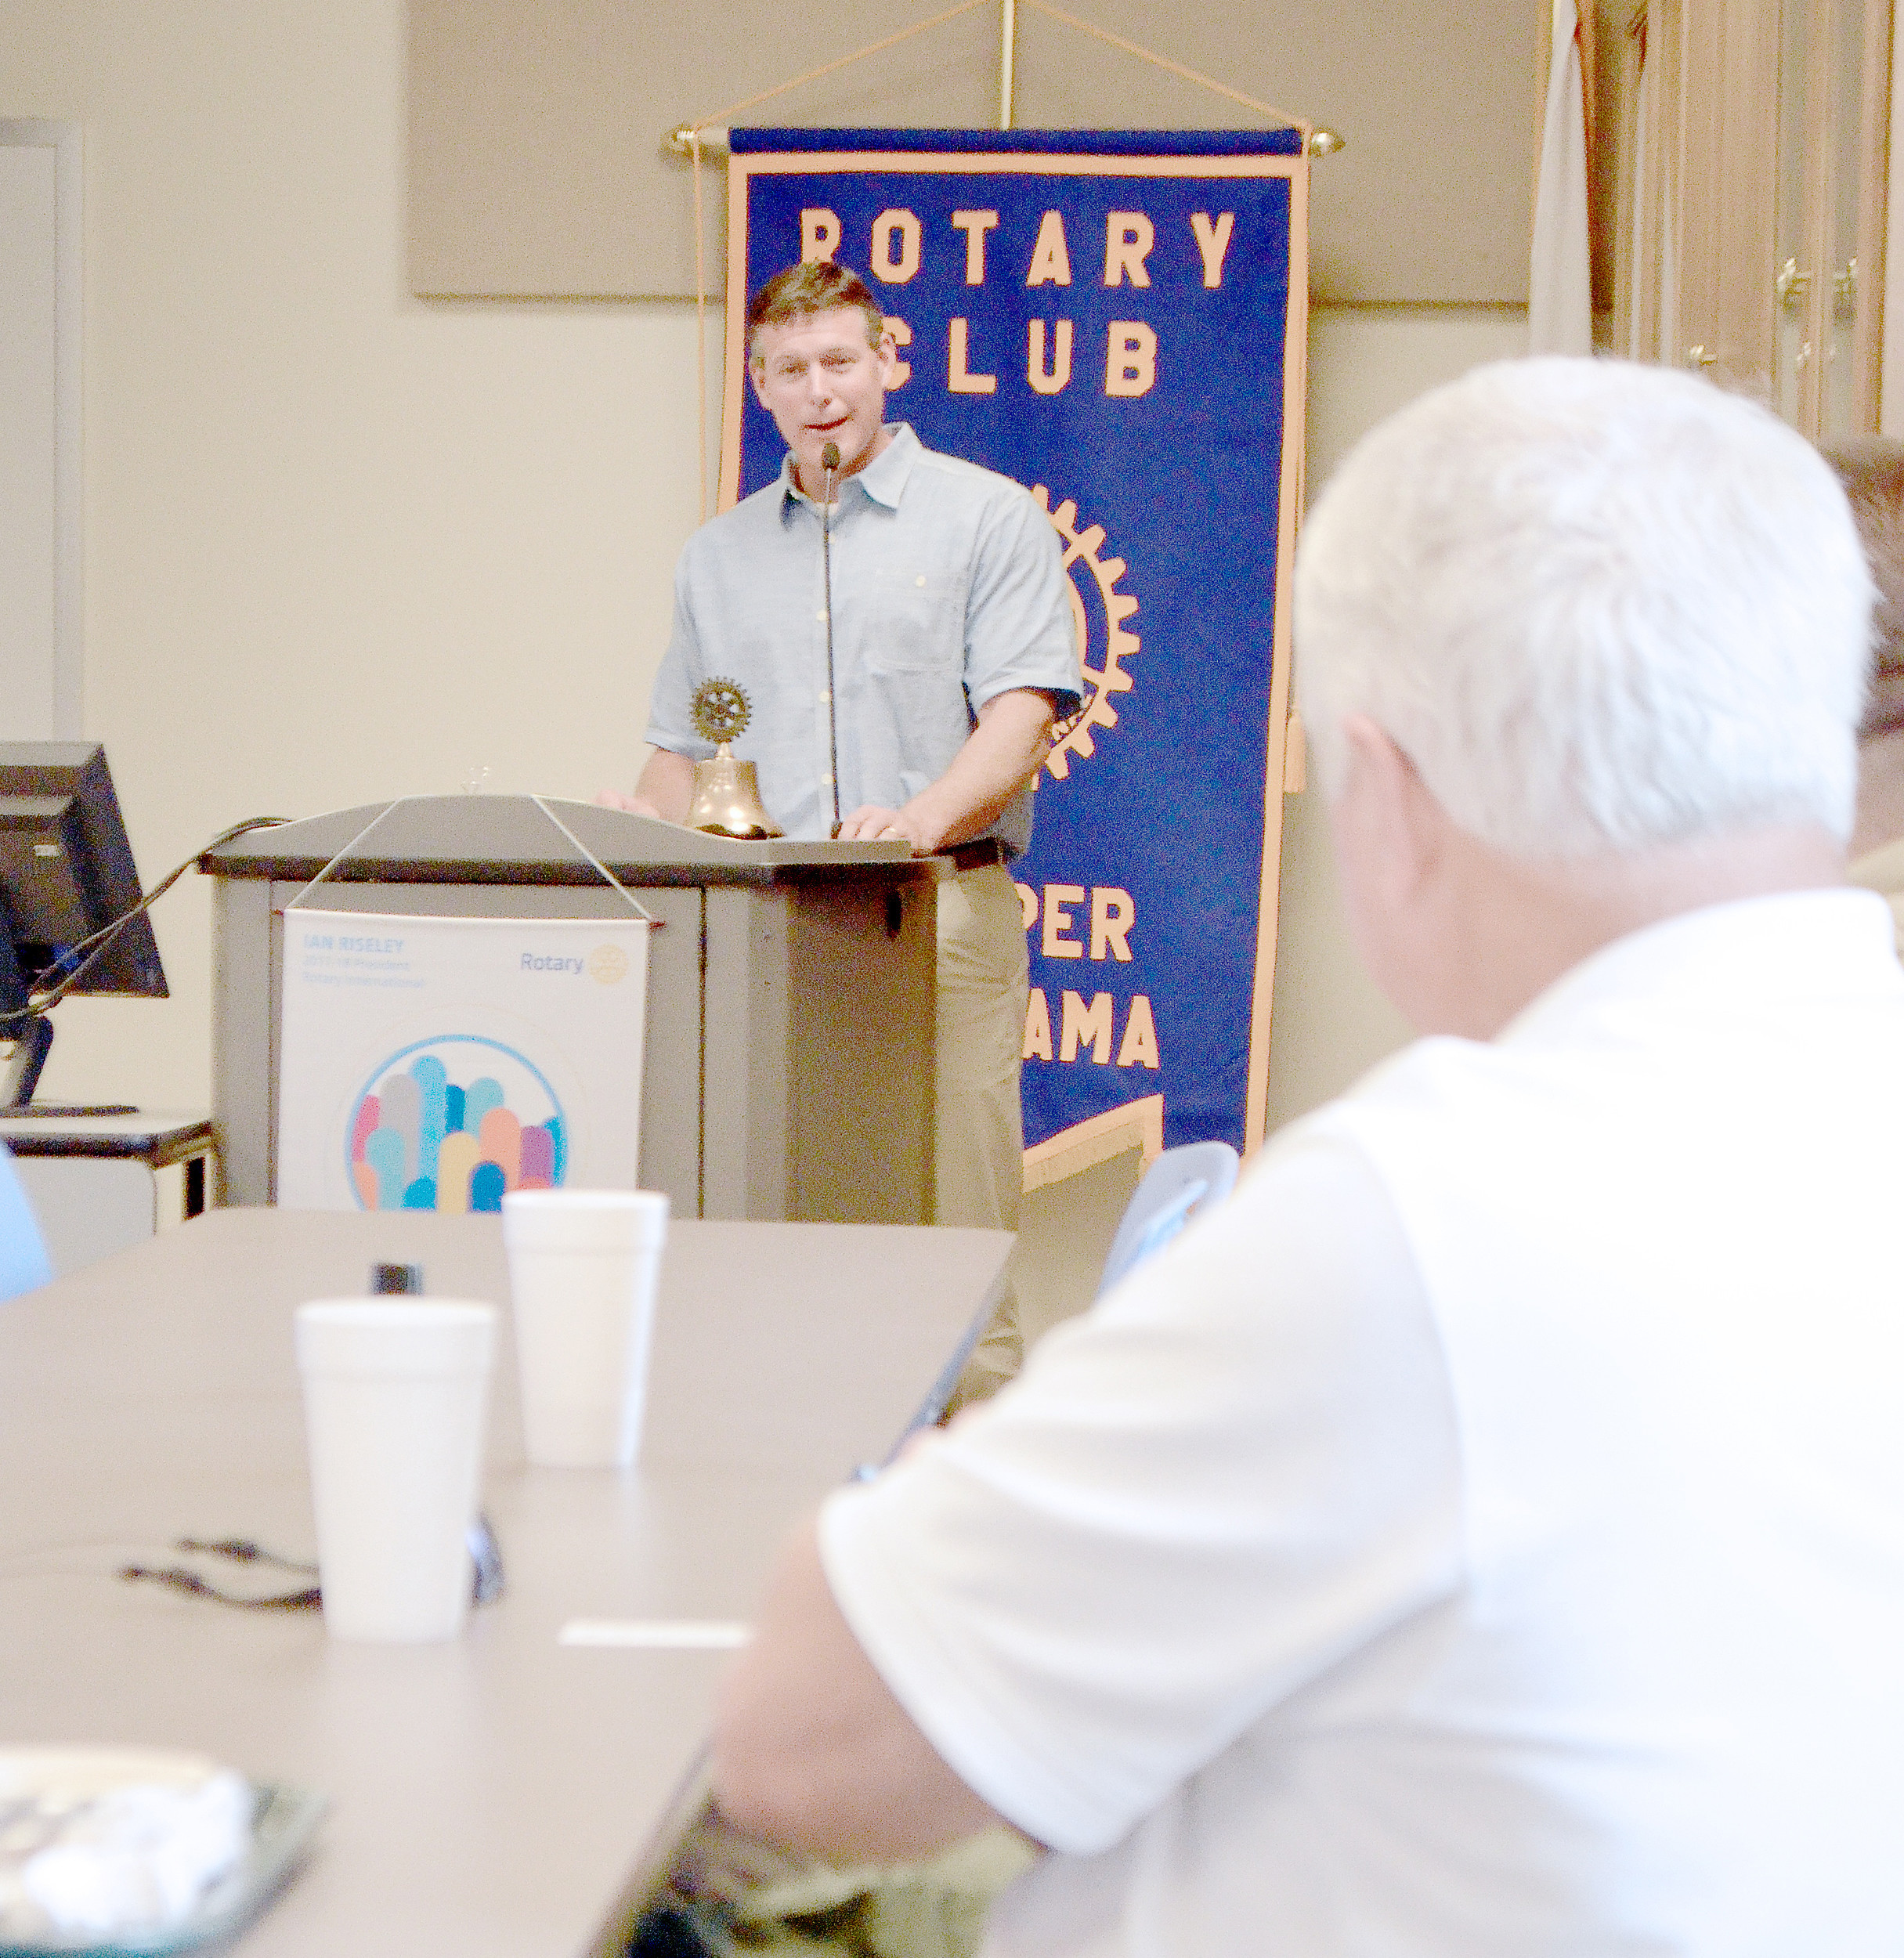 Walker County Schools Superintendent Dr. Jason Adkins addressed members of the Rotary Club of Jasper Tuesday. He spoke of where the school system stands financially, along with other matters. Looking on is Rotarian and Jasper Mayor David O'Mary. Daily Mountain Eagle - Nicole Smith